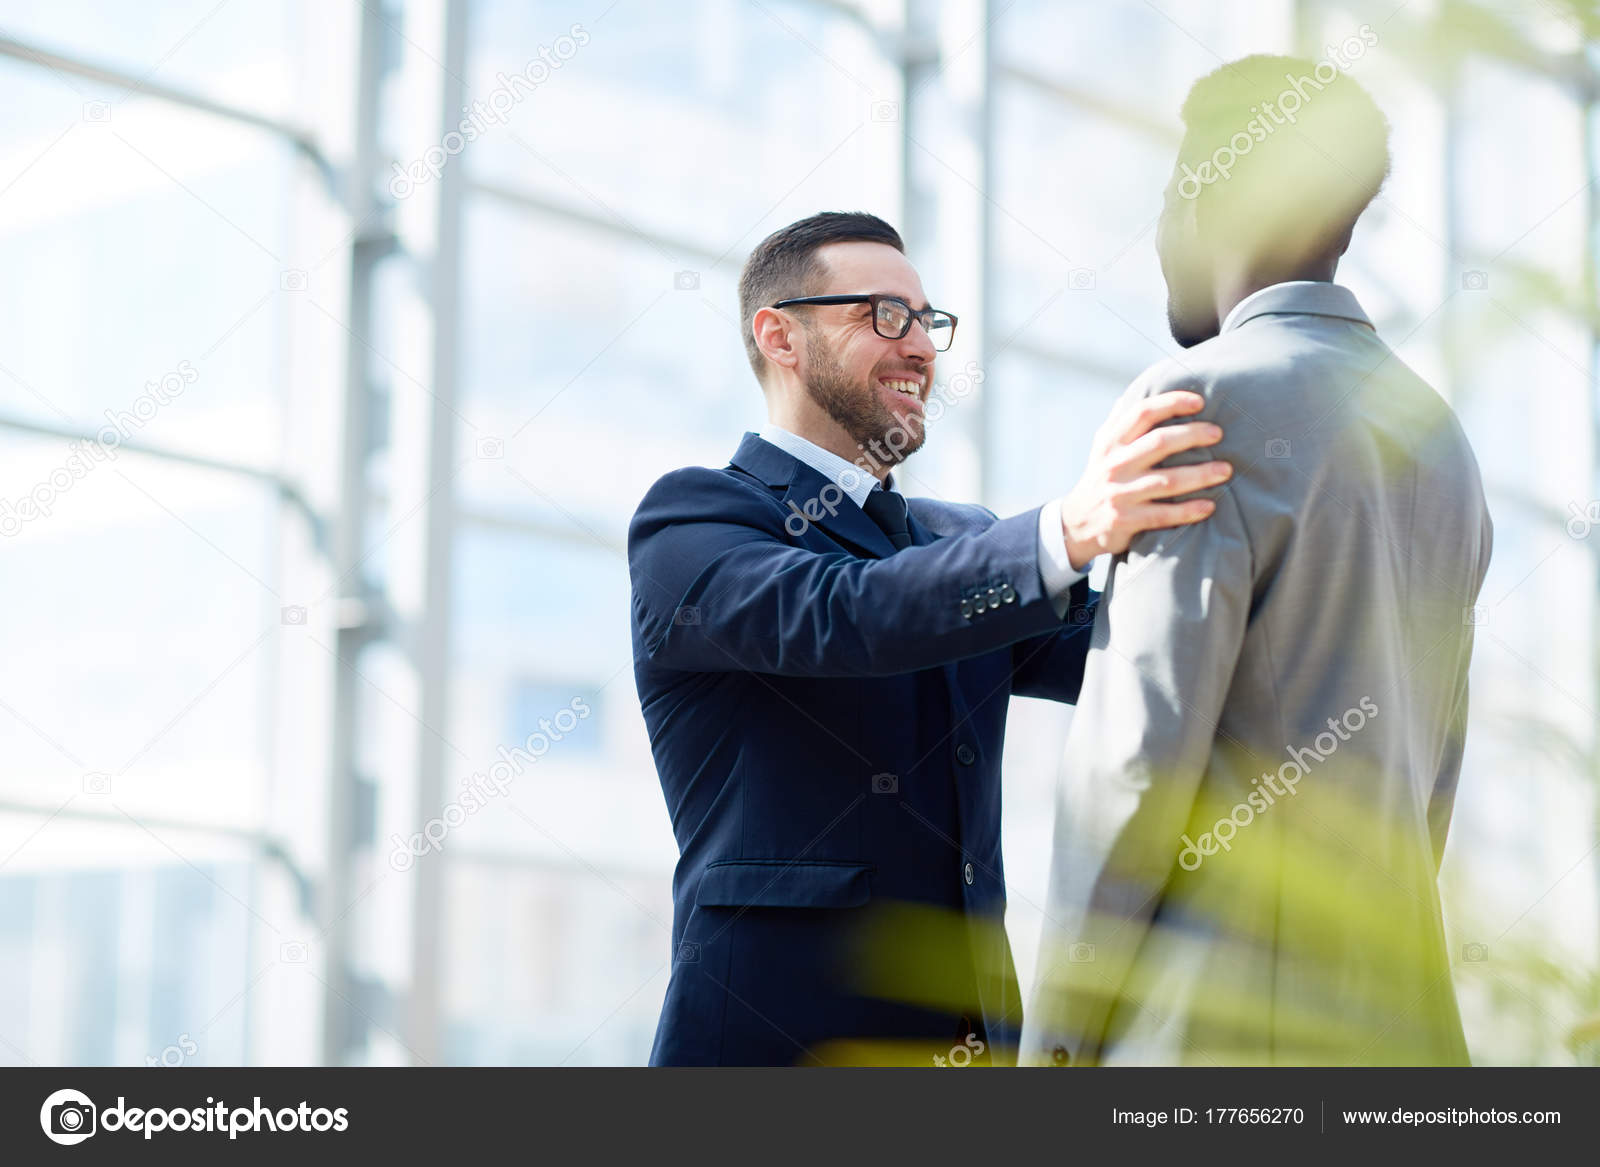 Patting someone on the shoulder